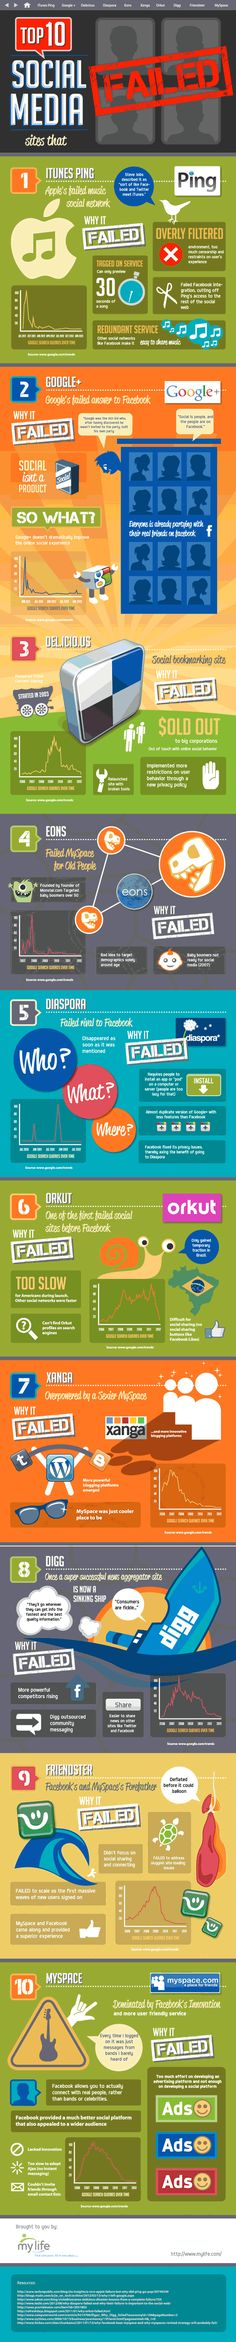 R.I.P. - Top 10 Failed Social Media Sites - http://www.reputatiecoaching.nl/